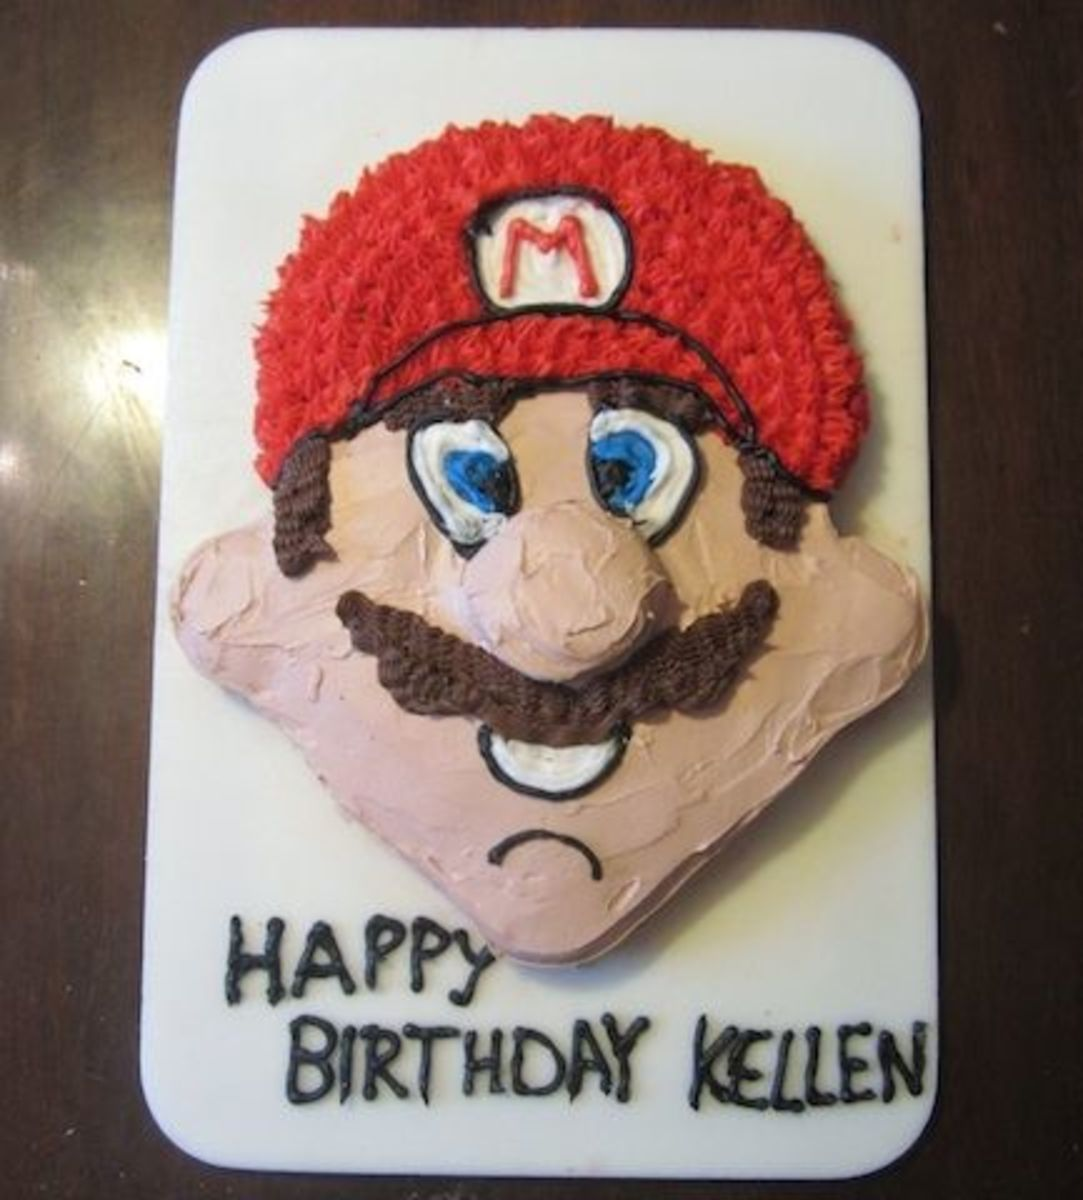 I used black icing to outline the hat brim and logo, eyes, mouth, and chin.